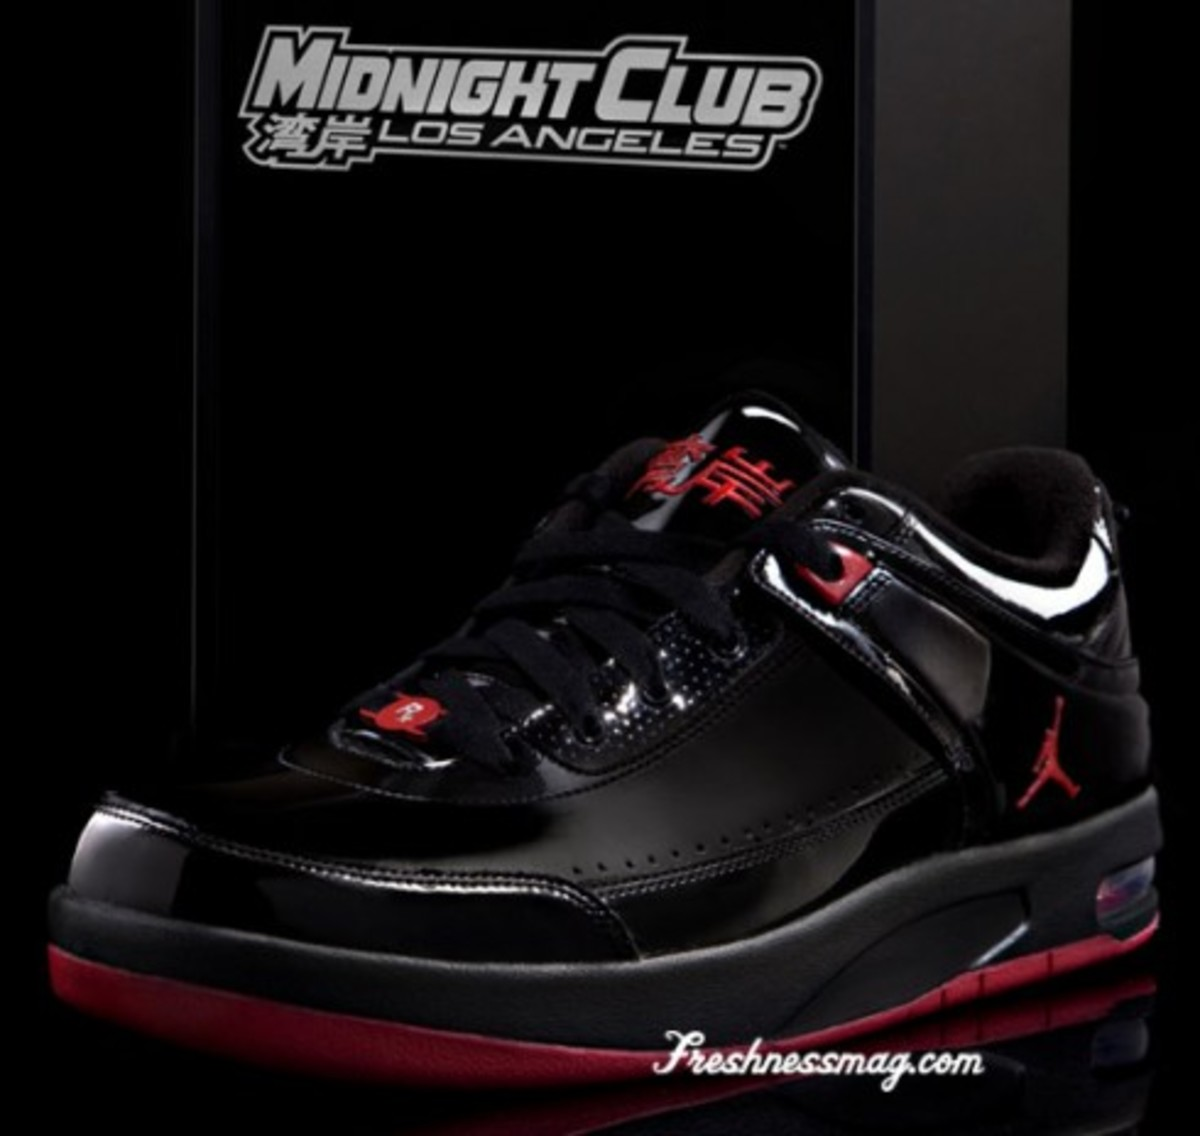 Air Jordan x Rockstar Games - Midnight Club